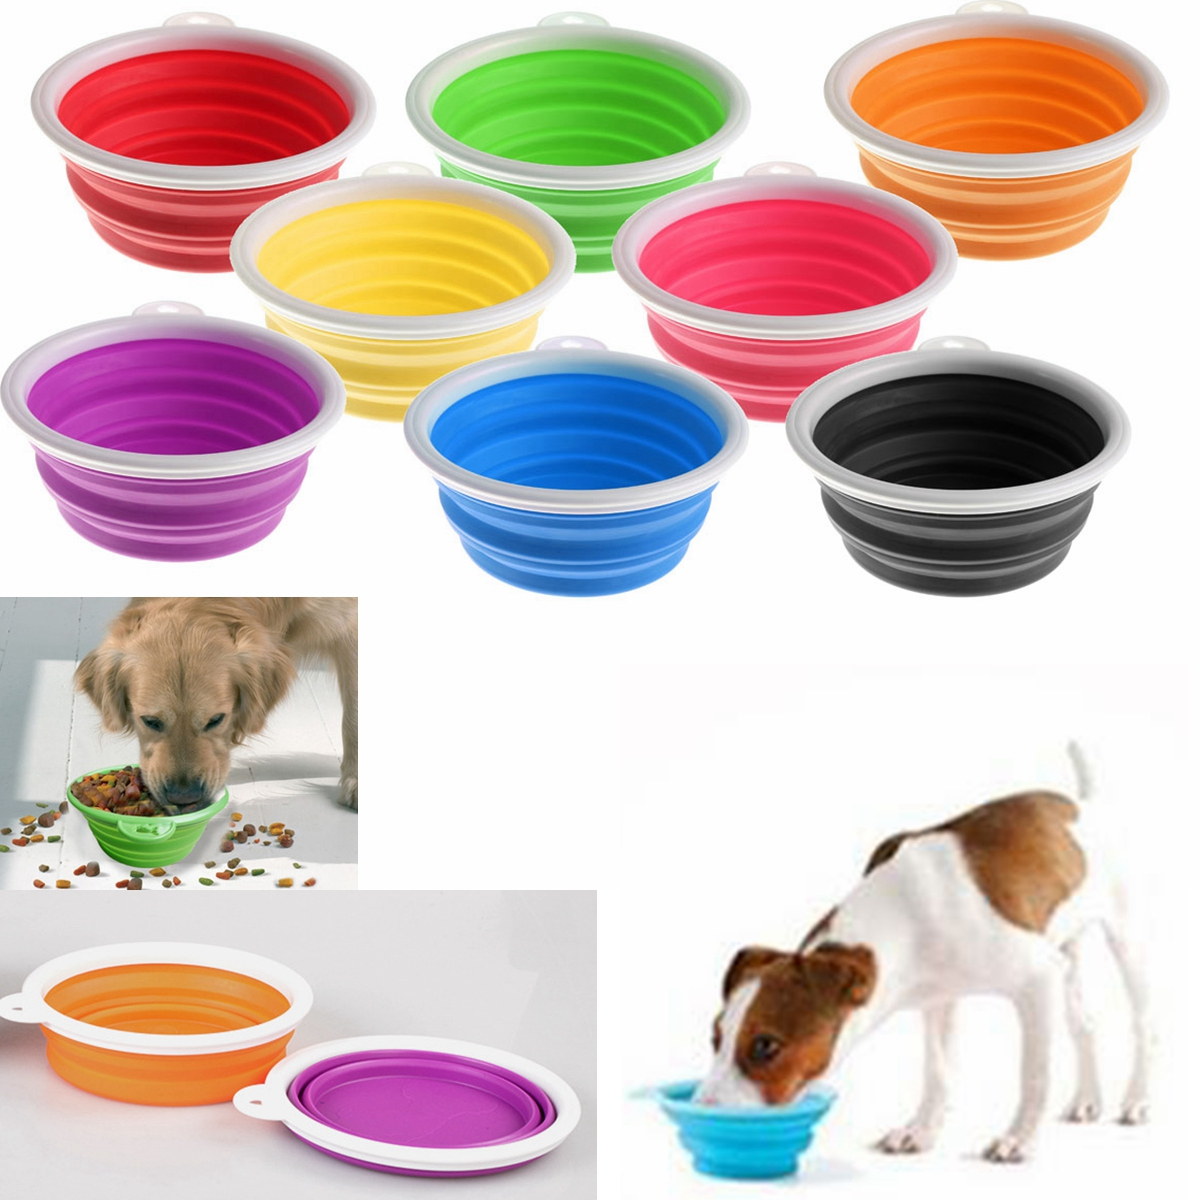 Collapsible Silicone Pet Bowl,Jeteven Expandable Cup Dish For Pet Dog/Cat Food Water Feeding Portable Travel Bowl